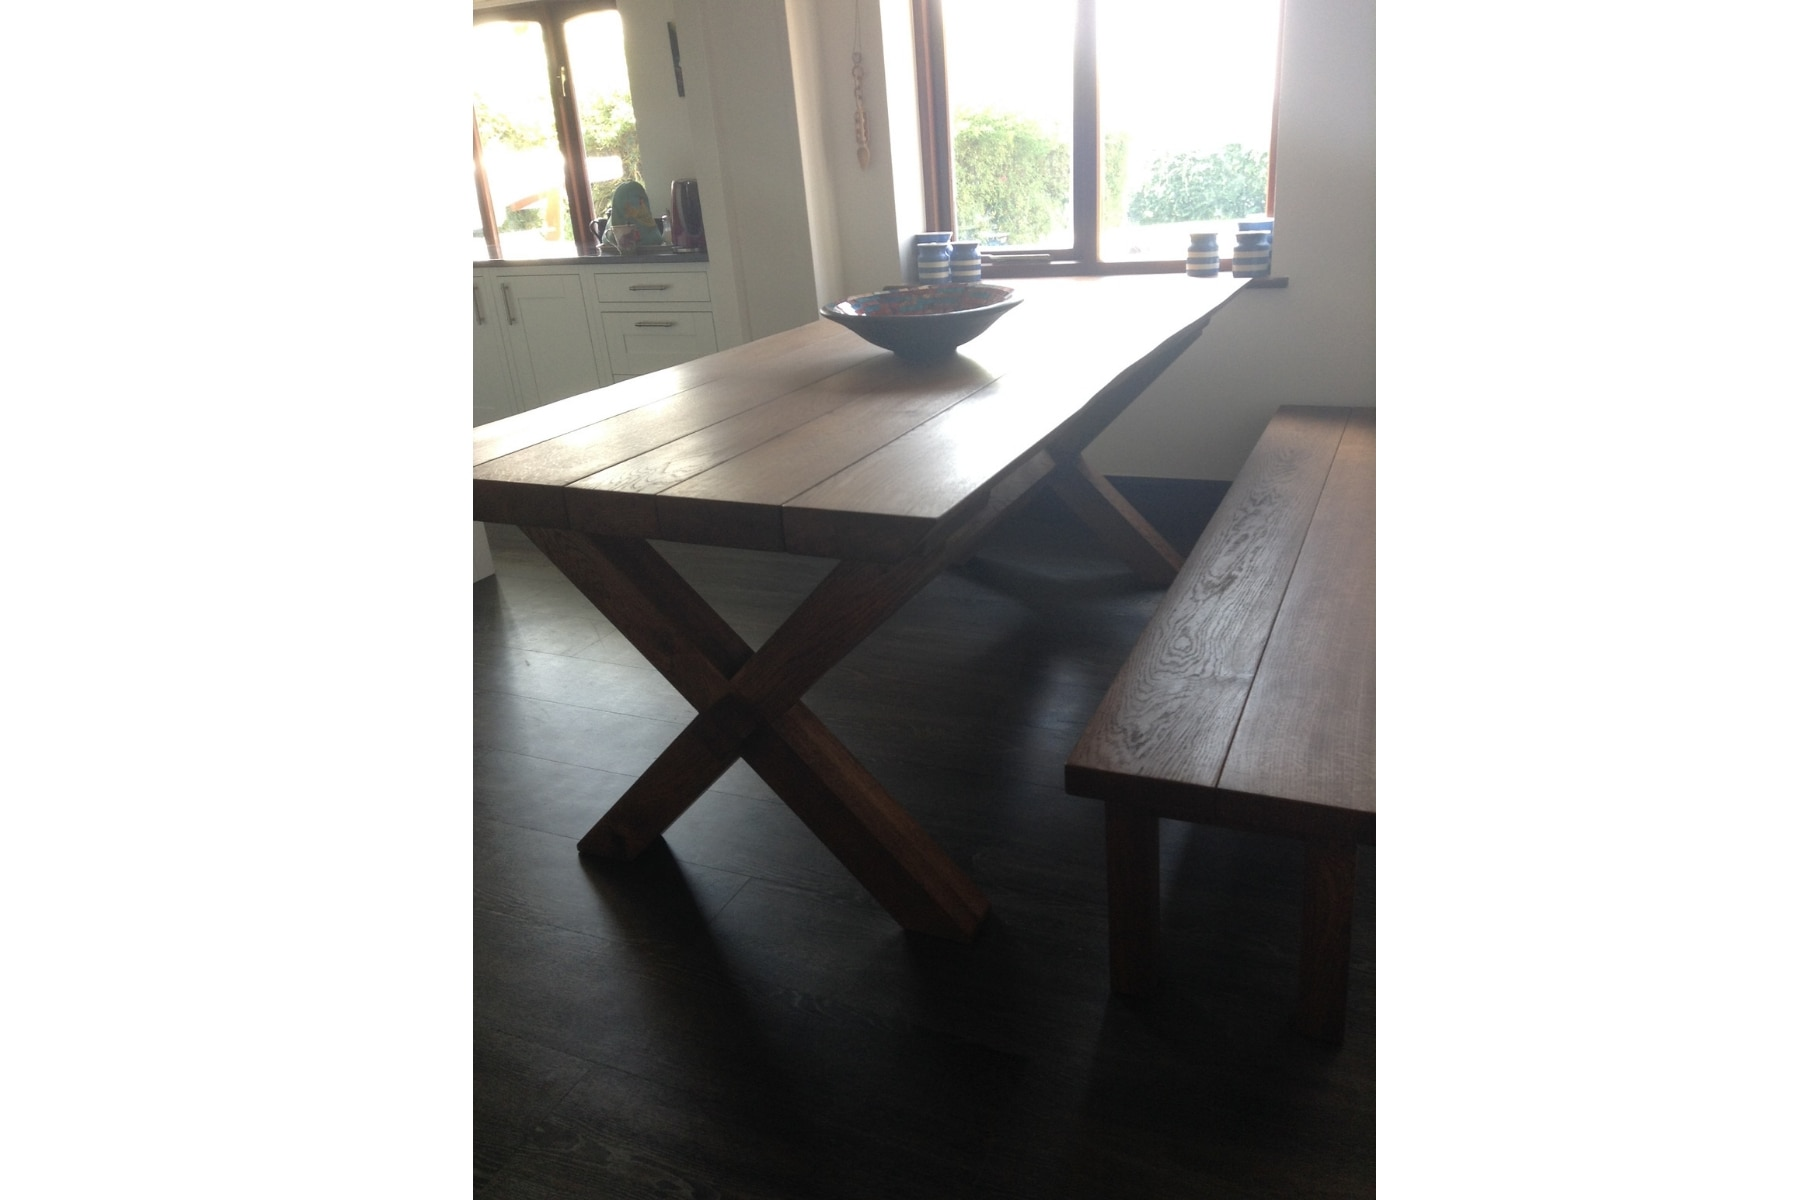 Bespoke Farmhouse Dining table project 509 Abacus Tables image 2